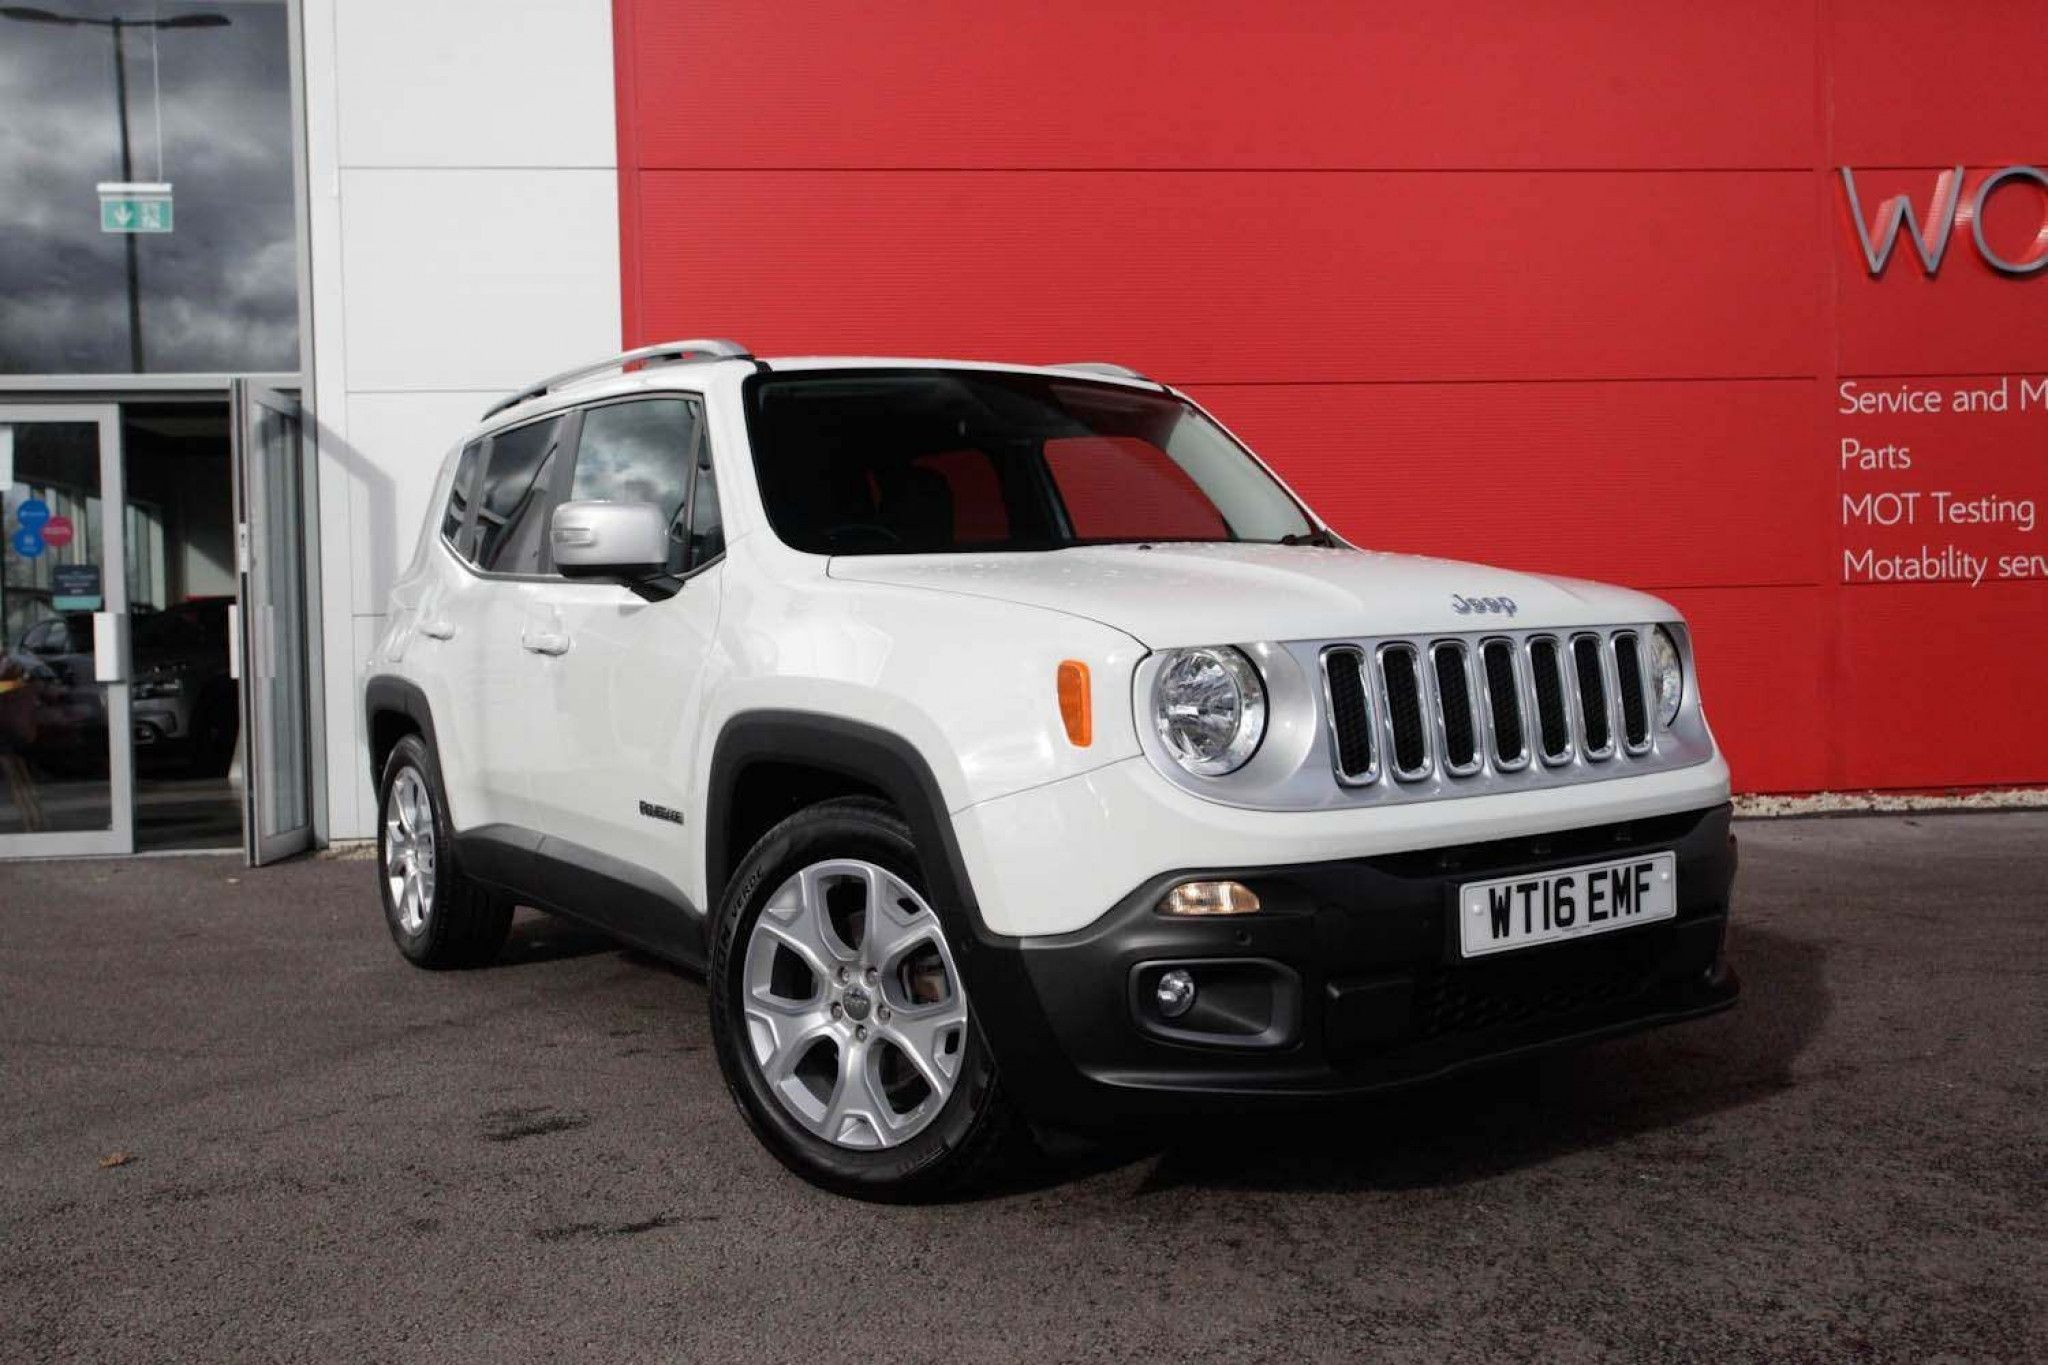 Jeep Renegade 1 6 Multijet Limited 5dr In 2020 Jeep Renegade Used Jeep Jeep